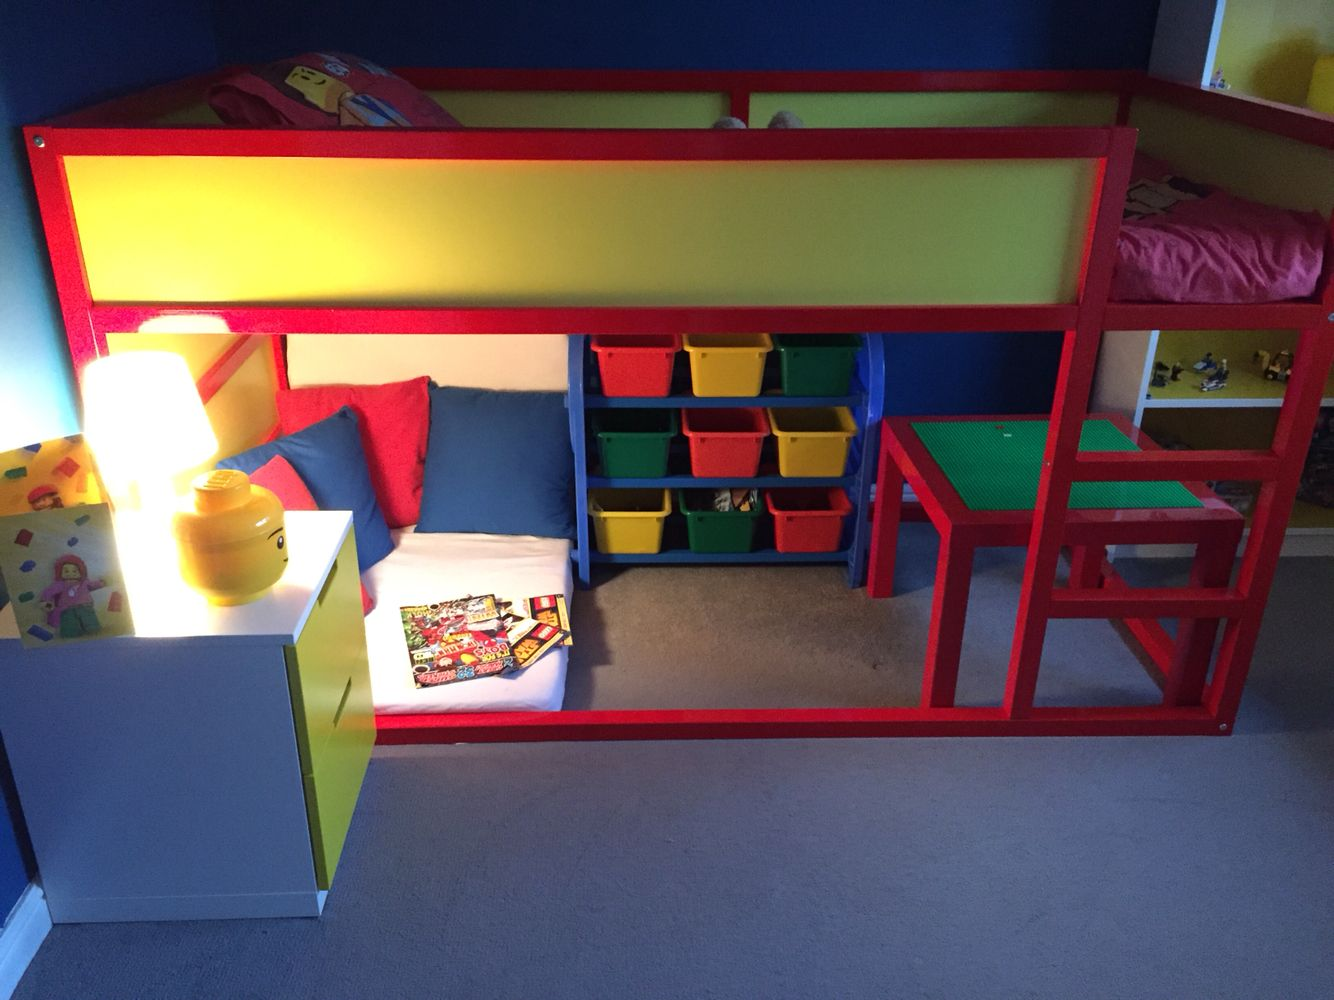 Stuva Loft Bed Lego Bedroom Completed! Ikea Kura Bed Hack | Milo's Room